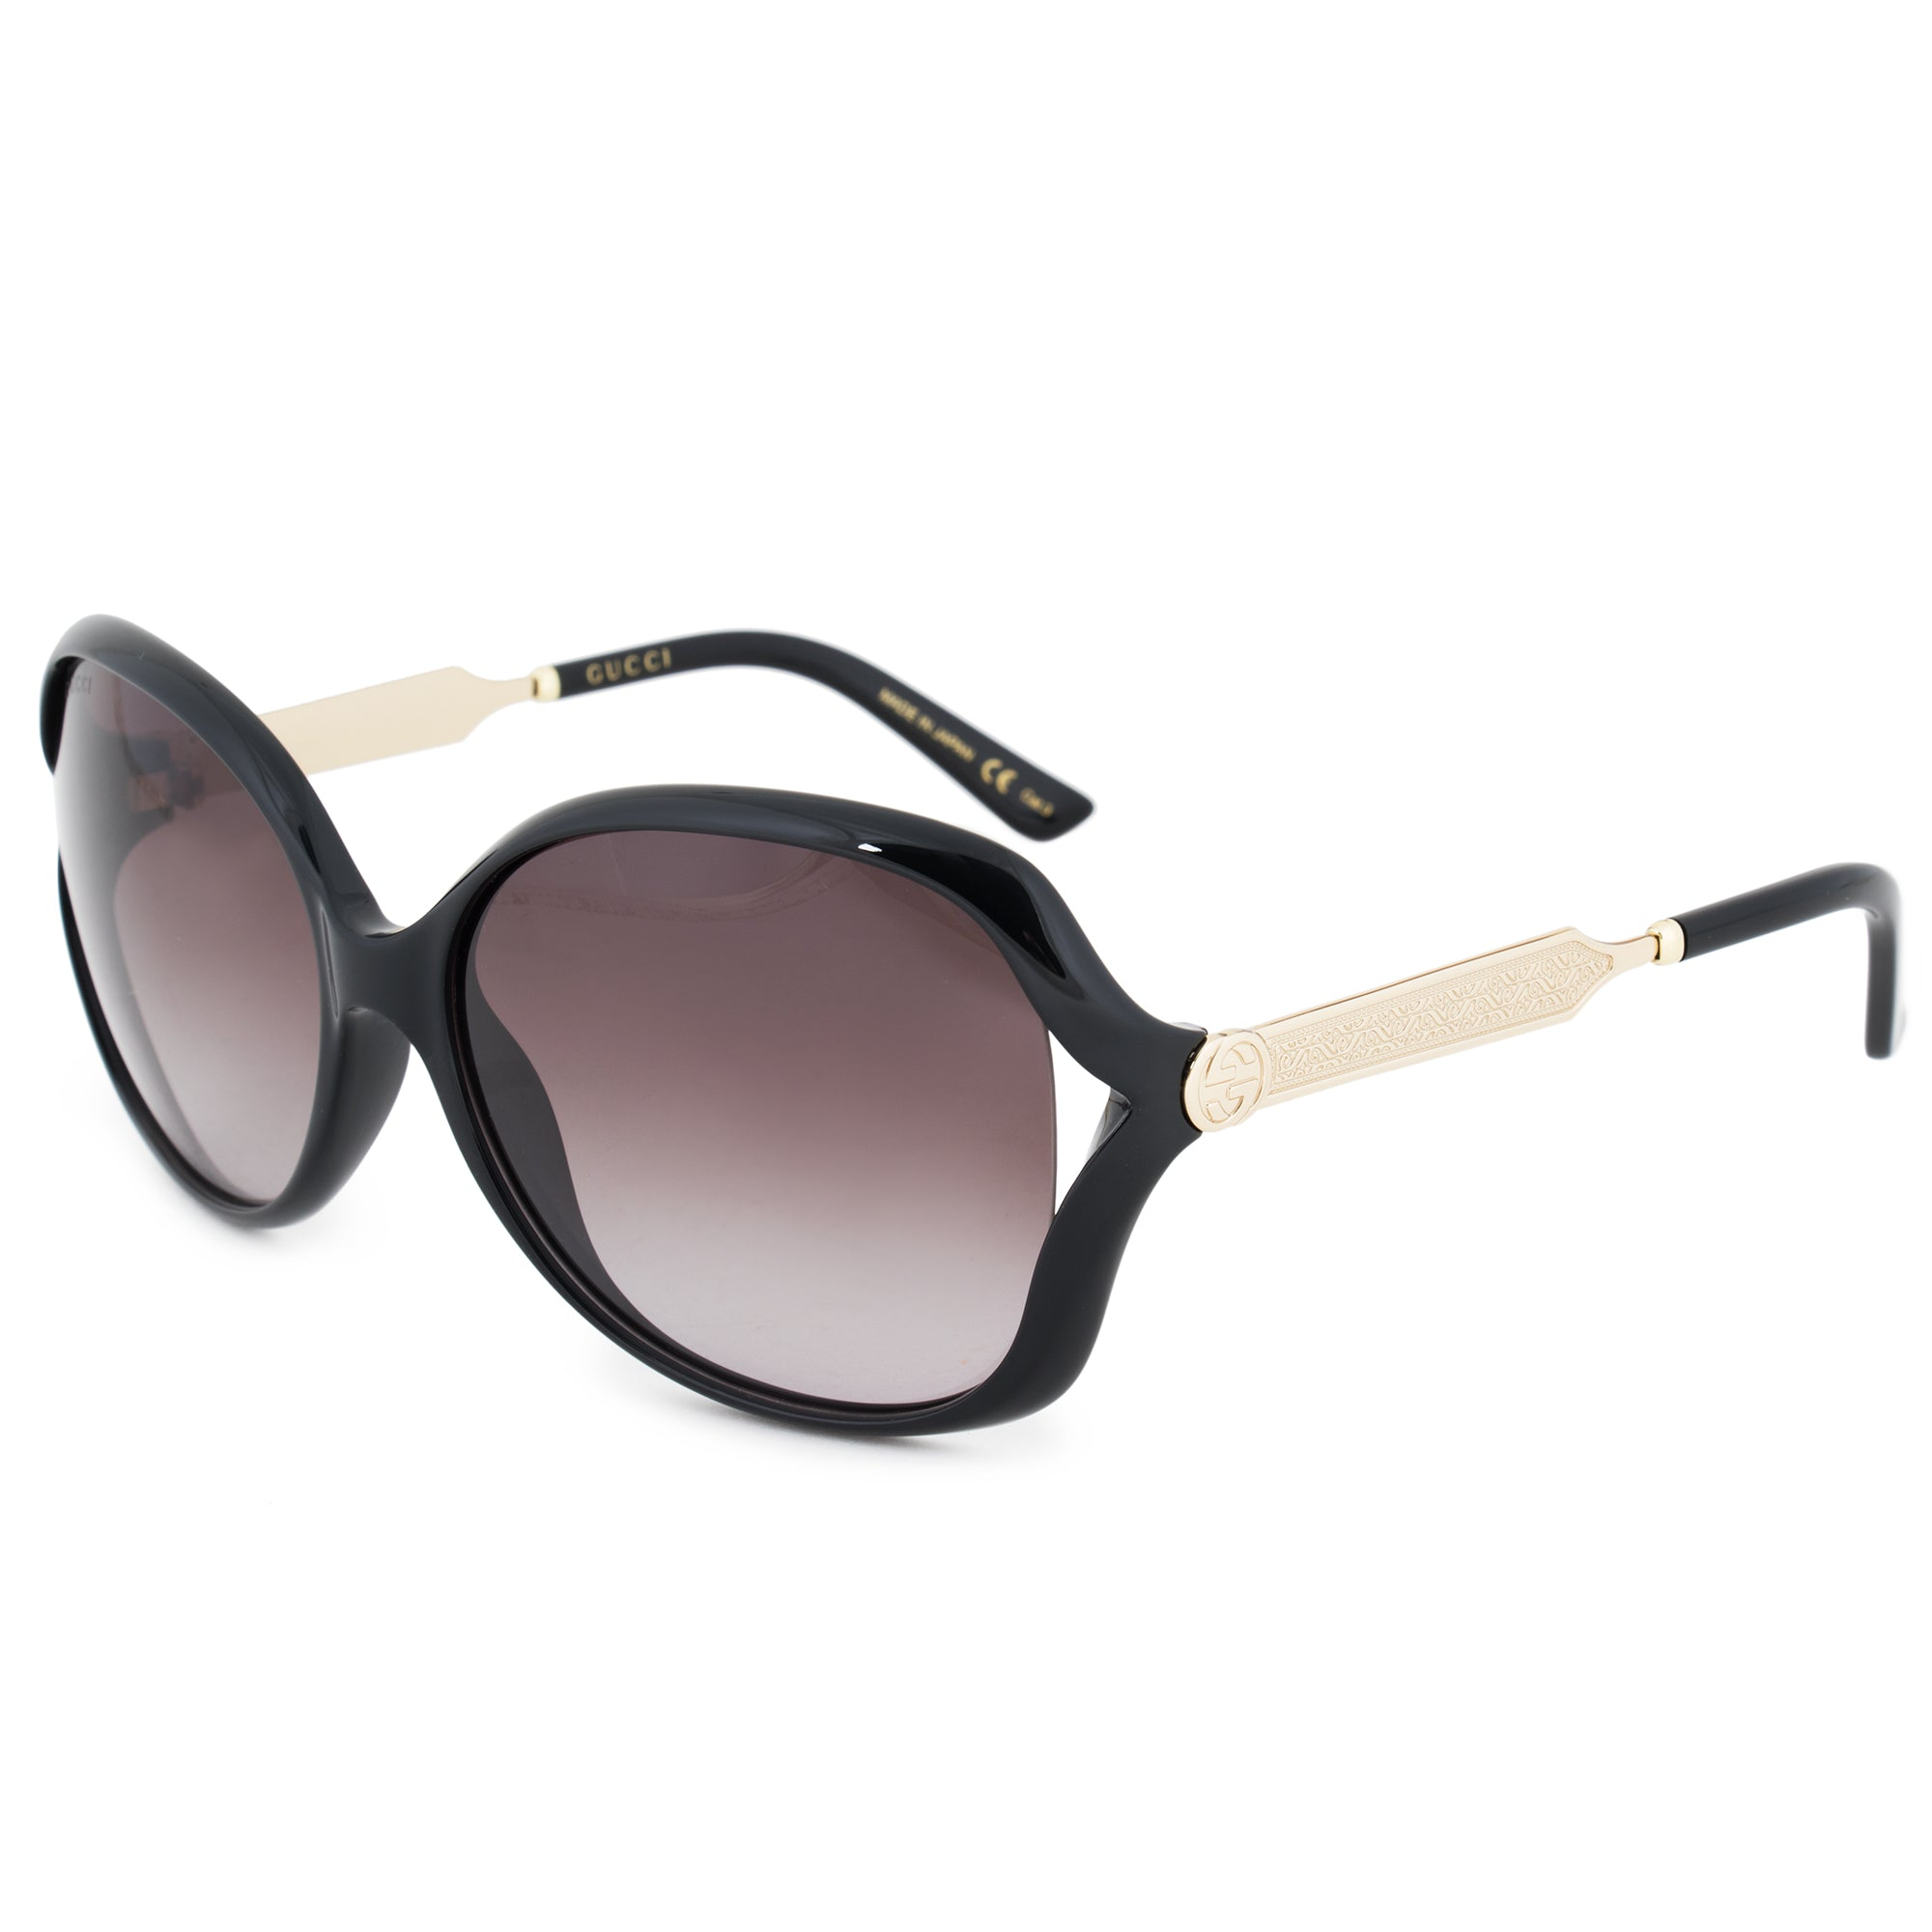 Gucci Butterfly Sunglasses GG0076S 002 60